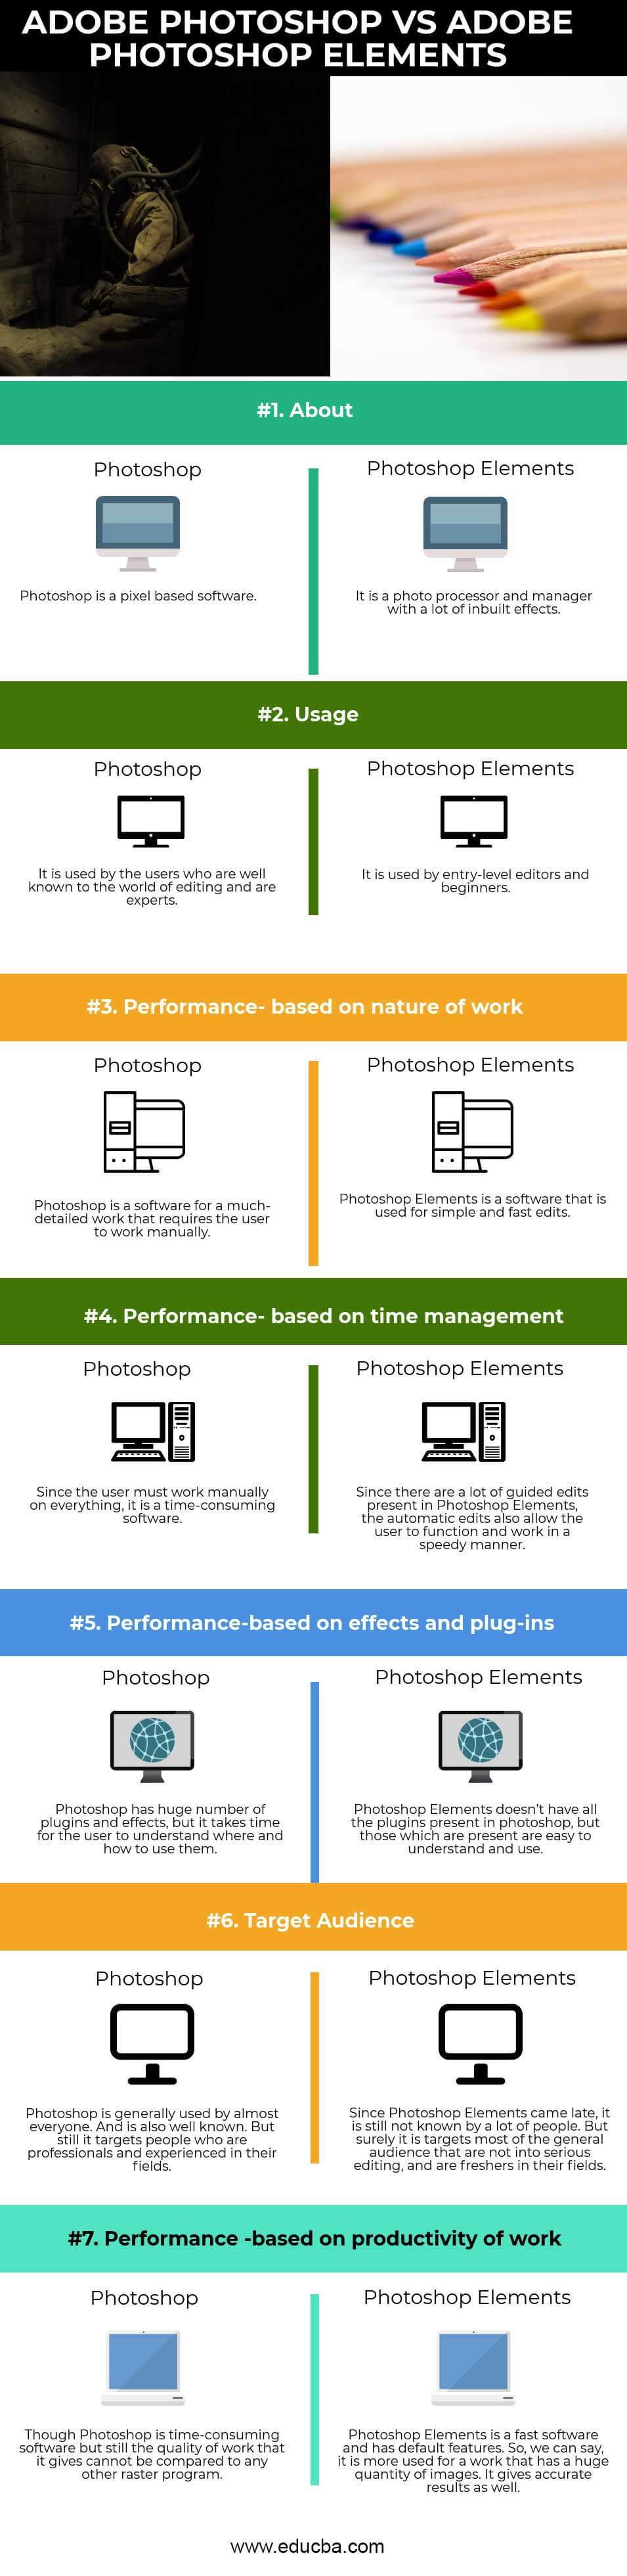 Photoshop vs Photoshop Elements Infographics